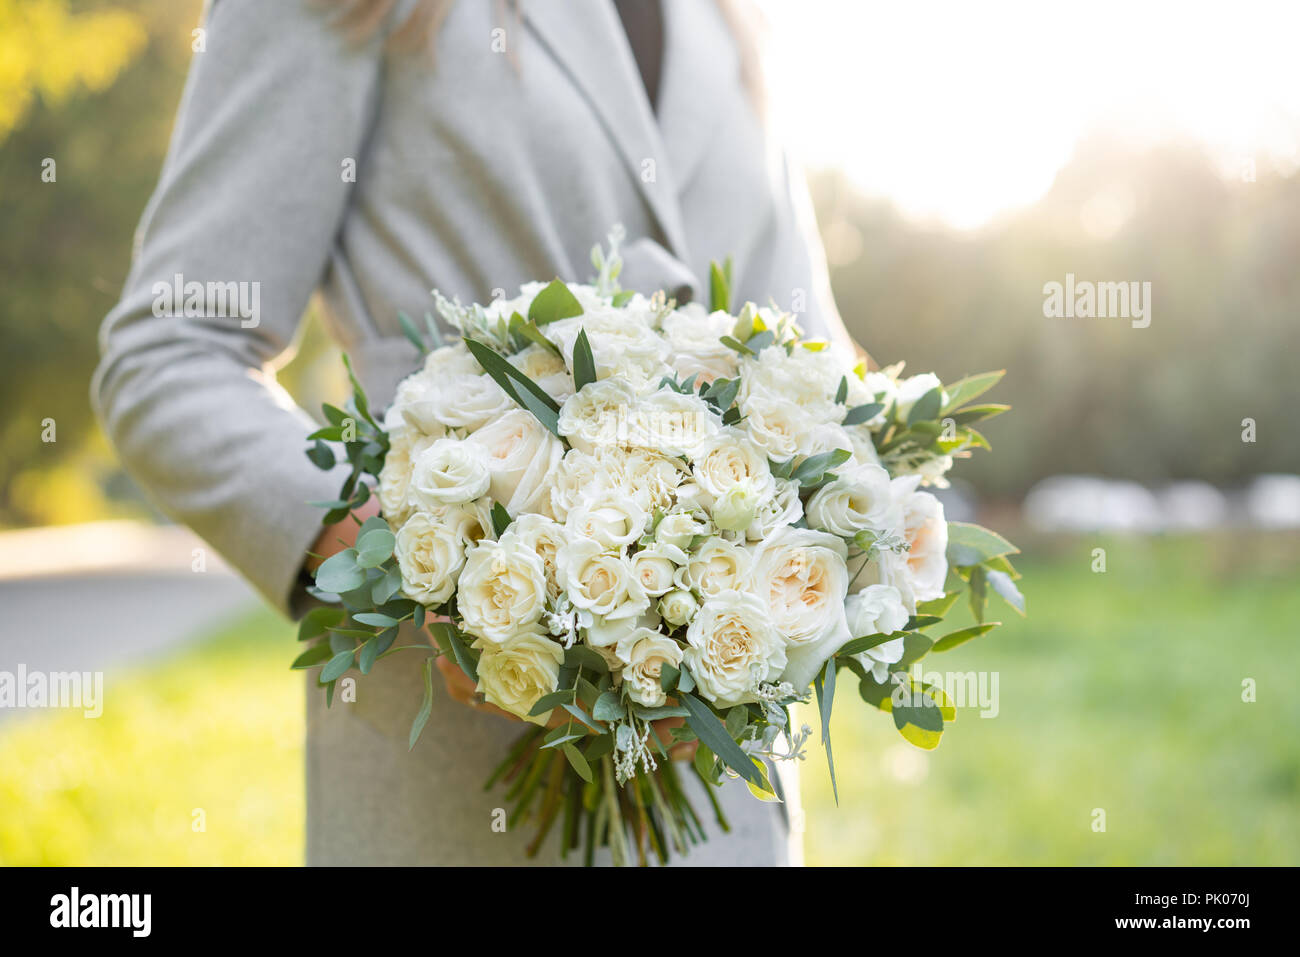 Young girl holding a beautiful spring bouquet flower arrangement young girl holding a beautiful spring bouquet flower arrangement with white flowers bright dawn or sunset sun izmirmasajfo